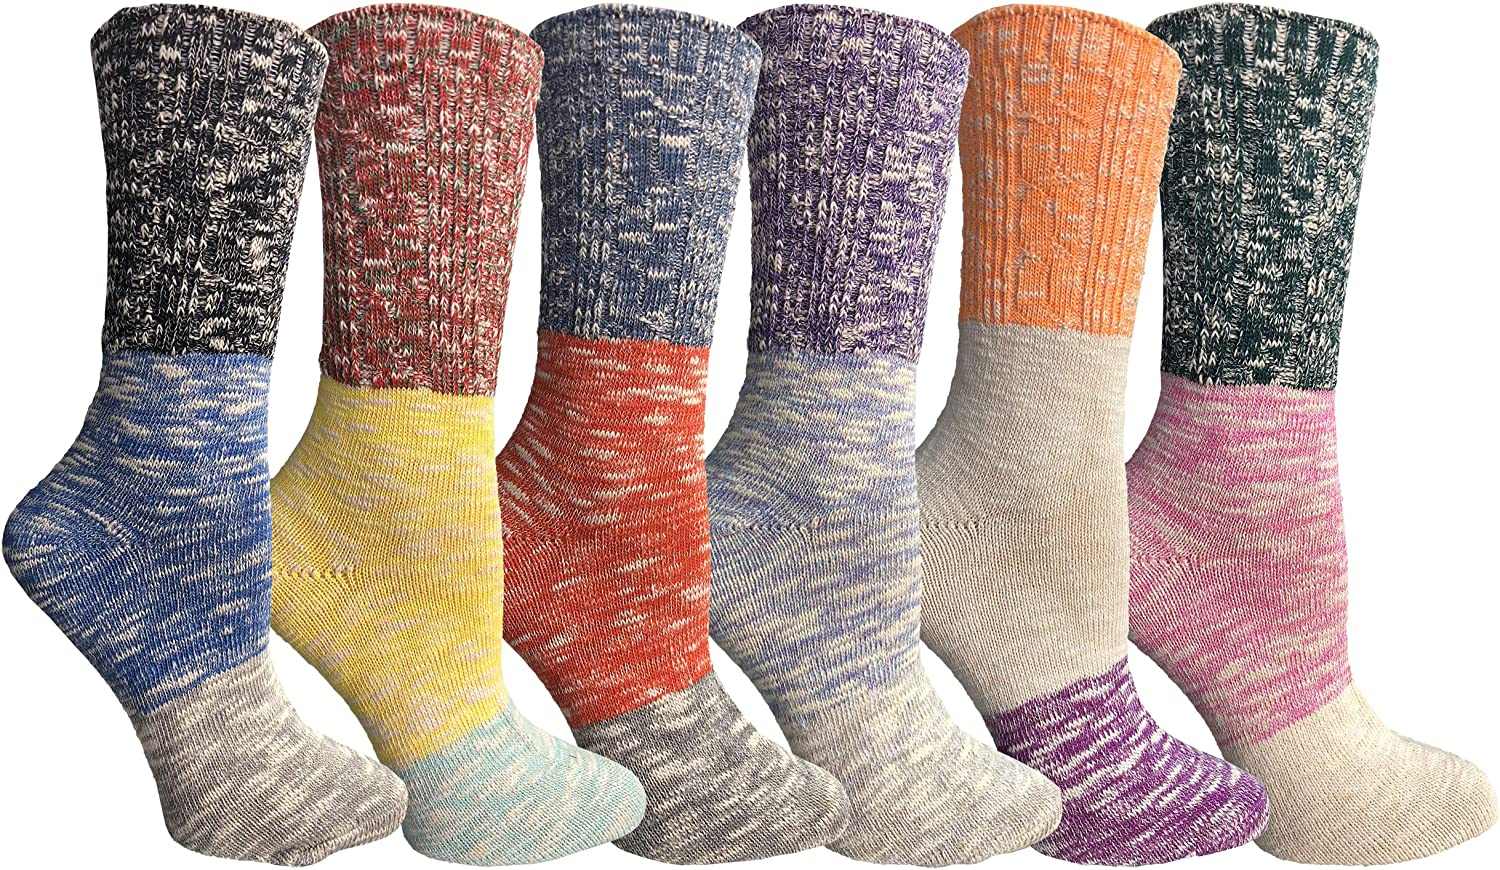 Yacht & Smith Value Pack of Women's Wool Socks, Heavy Comfort Knit Ribbed Hiking Sock (6 Pack I)